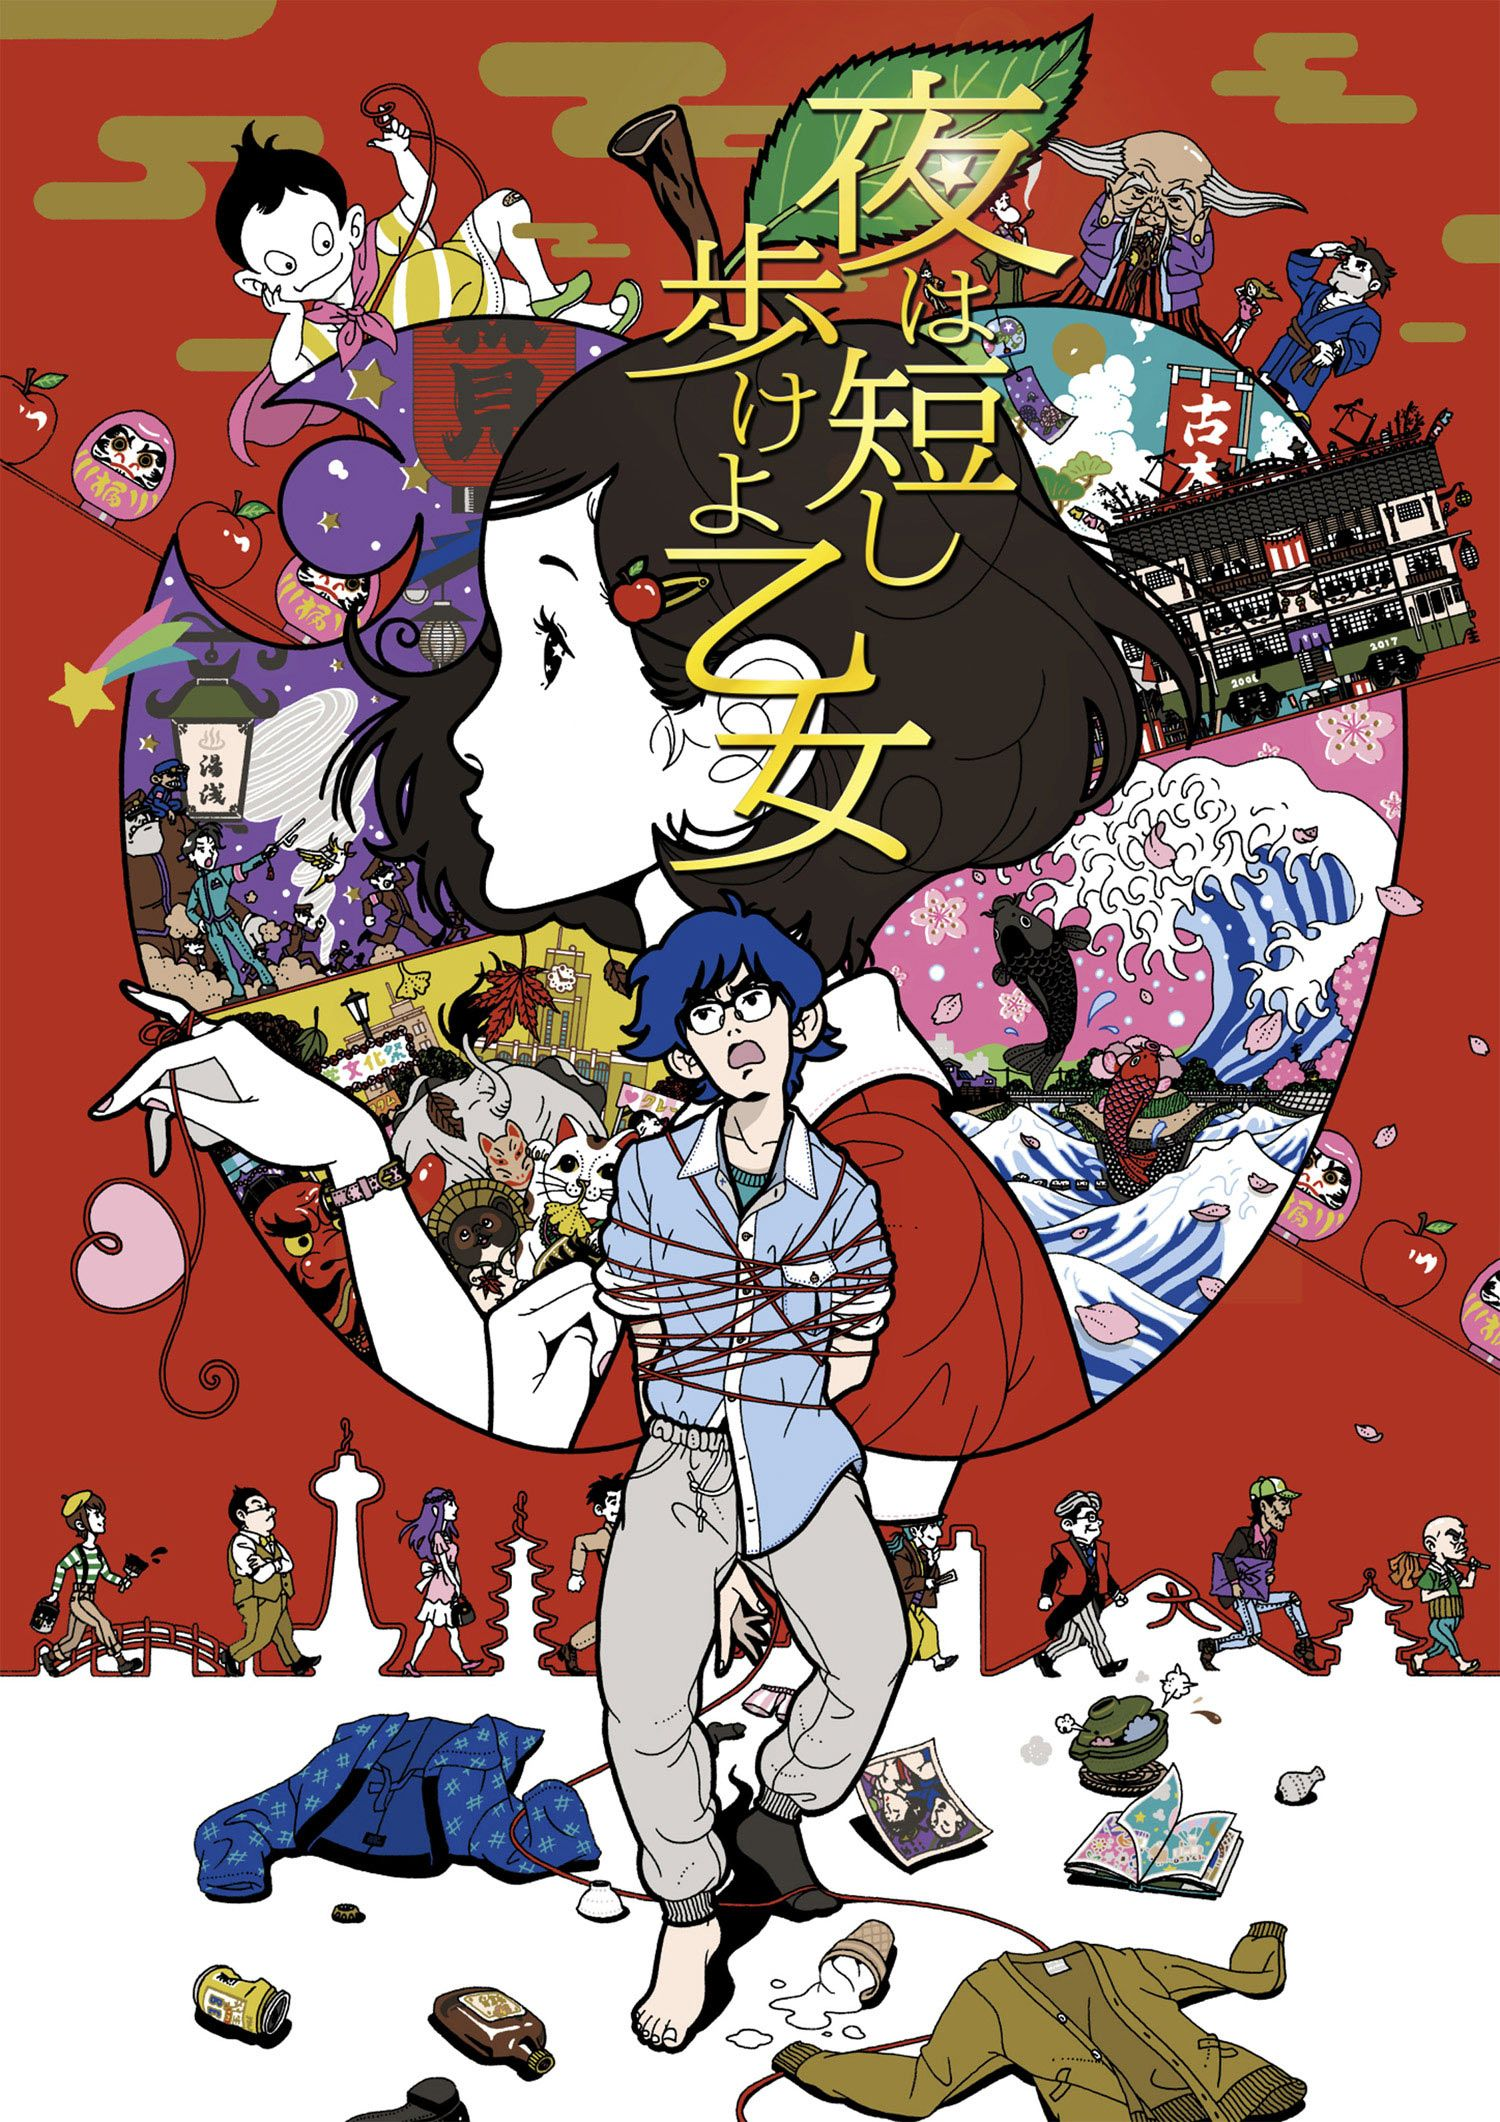 Masaaki Yuasa Has Made A New Feature Night Is Short Walk On Girl Trailer With Images Anime Anime Films Anime Movies